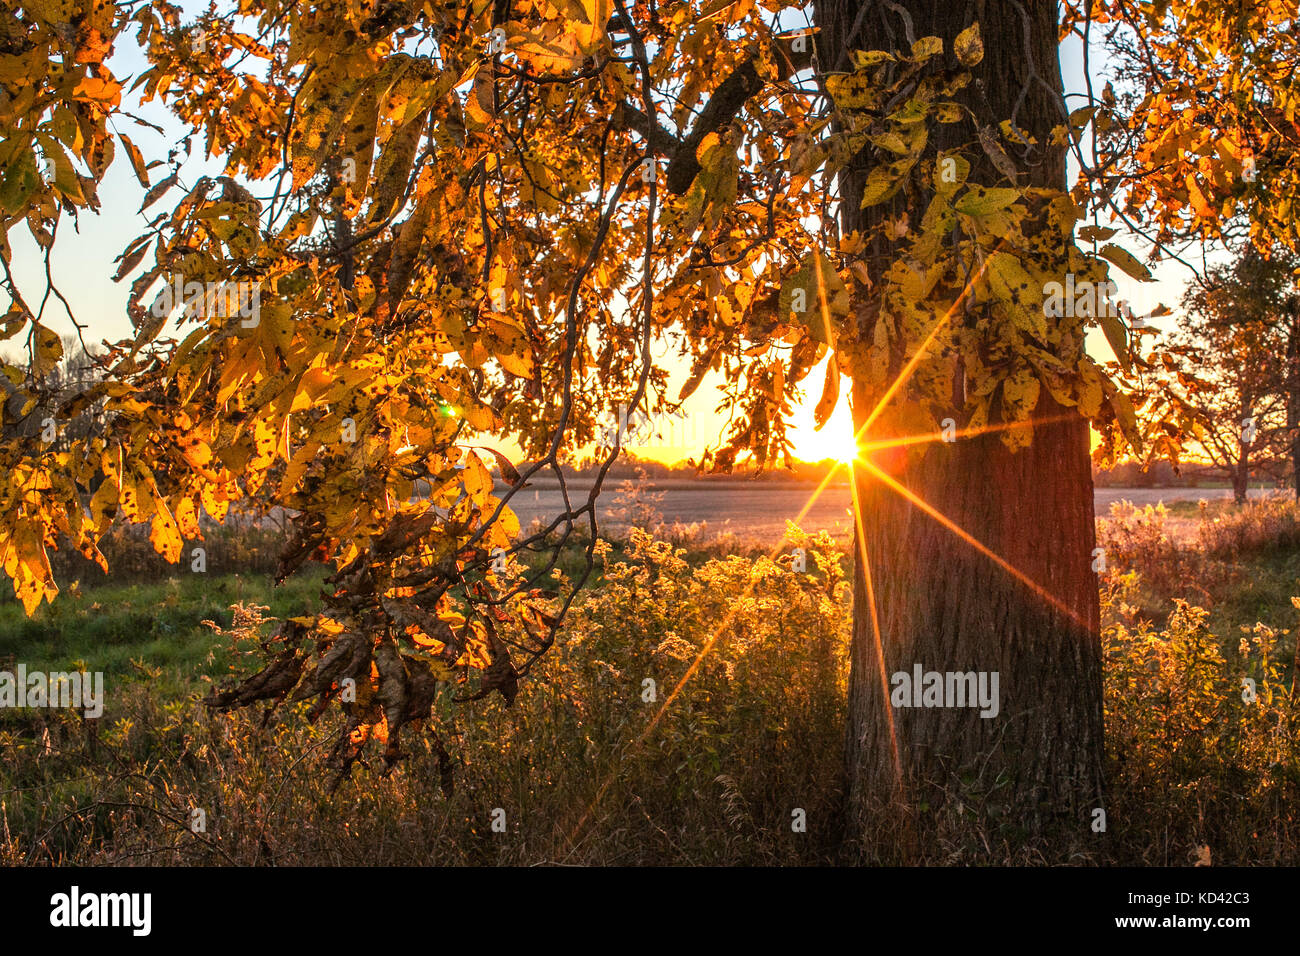 A sunset behind a shagbark hickory tree trunk creates a large sunburst, painting the scene with golden light. - Stock Image